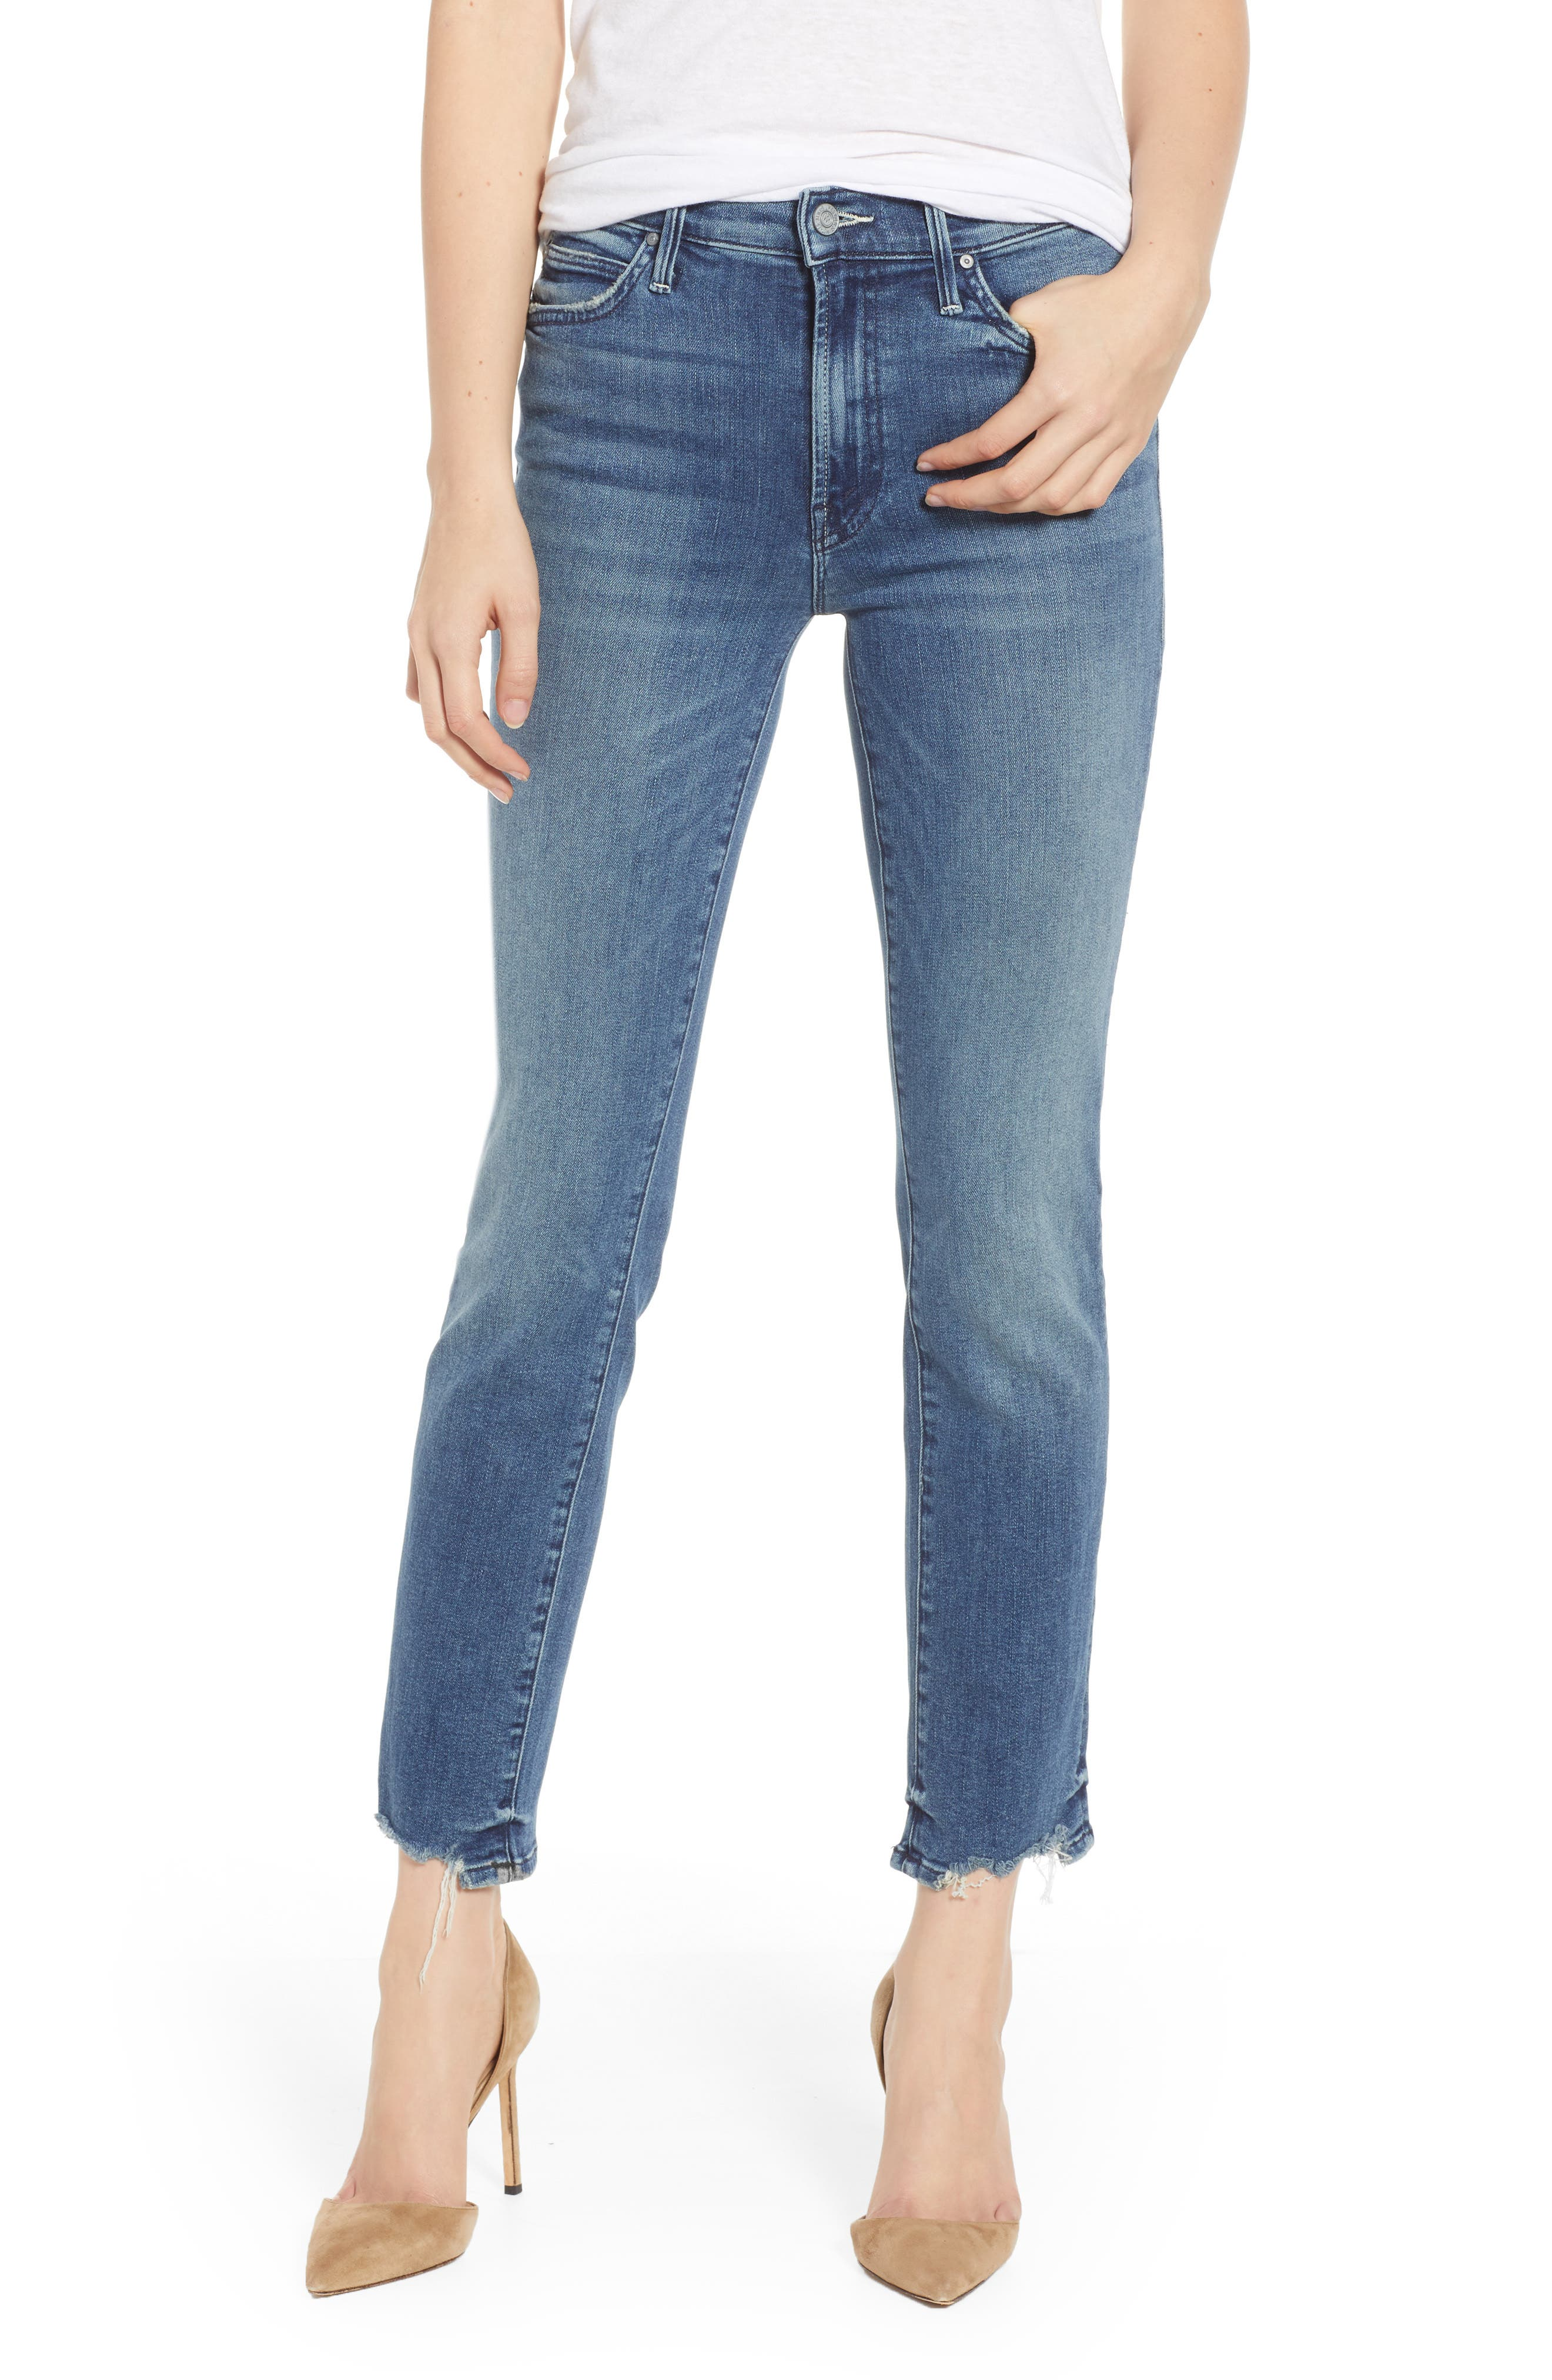 The Rascal Ankle Chewed-Hem Straight-Leg Jeans In The Ones We Used To Know in Just Like Ones Used Know